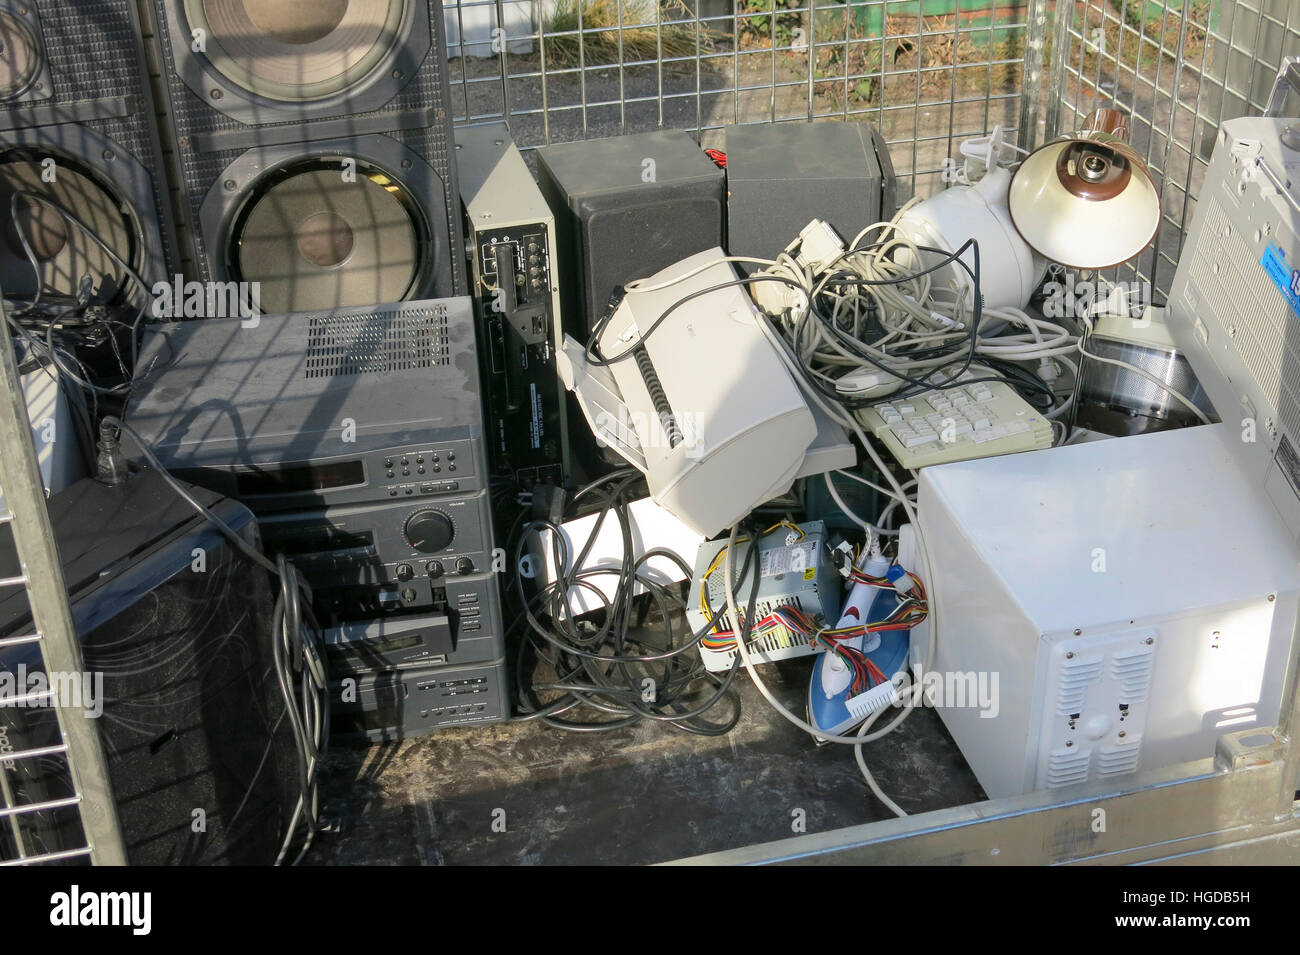 Scrap Stock Photos Images Alamy Electronics Recycling Pictures Zimbio Electronic In Place Image